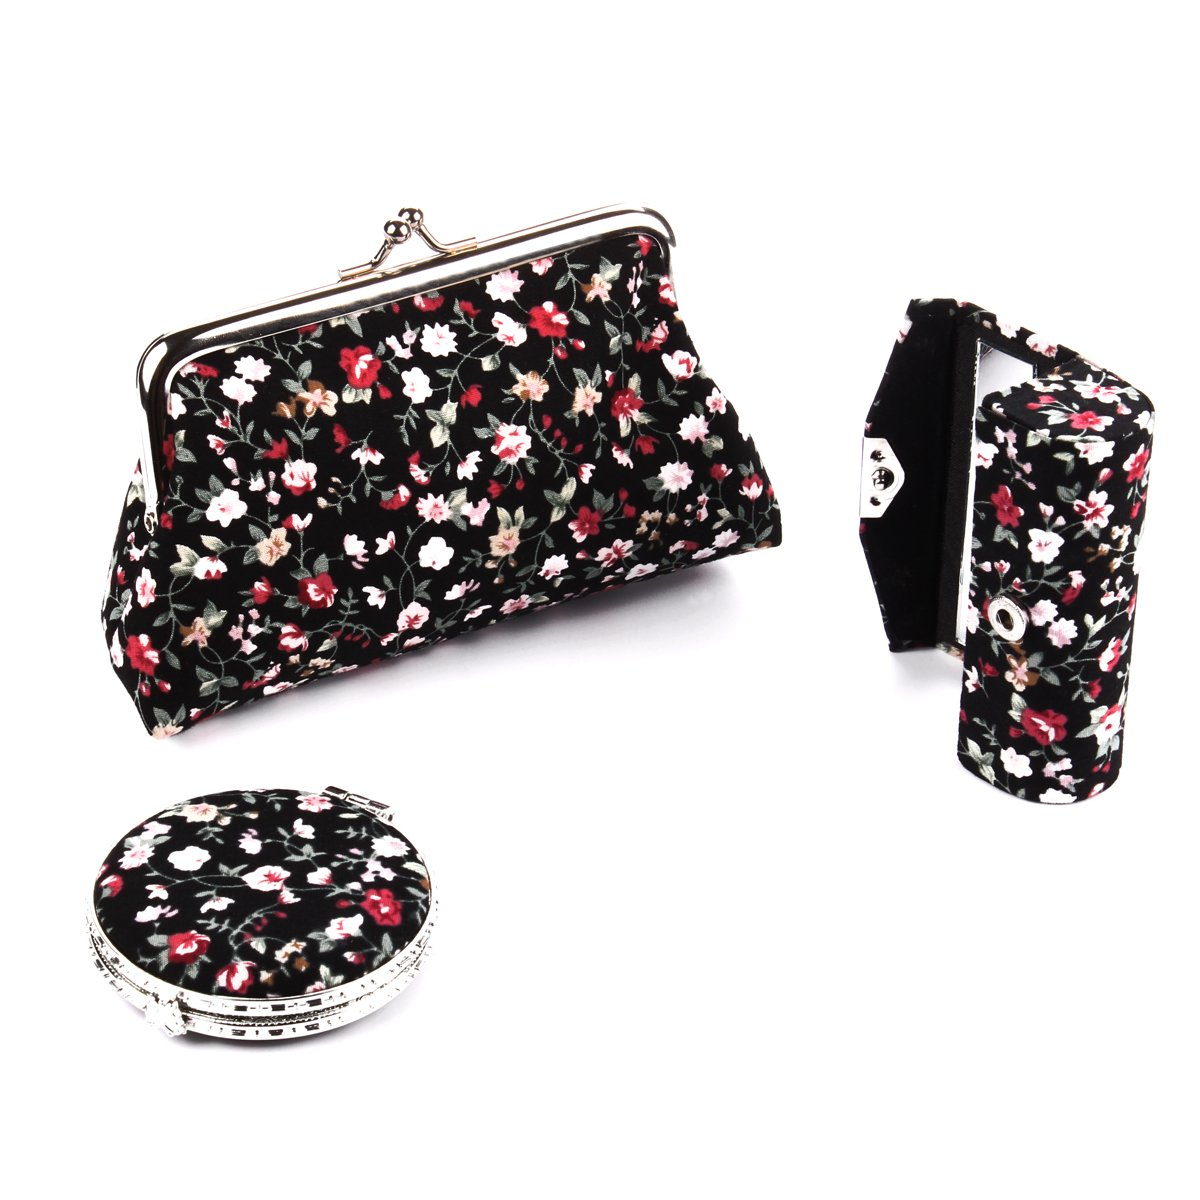 Ezeso 3 in 1 Floral Cosmetic Organizer Lipstick Mirror Butterfly Kiss-Lock Case Set,Women's Embroidery Coin Purse Holder Storage Gift Kit (Black)